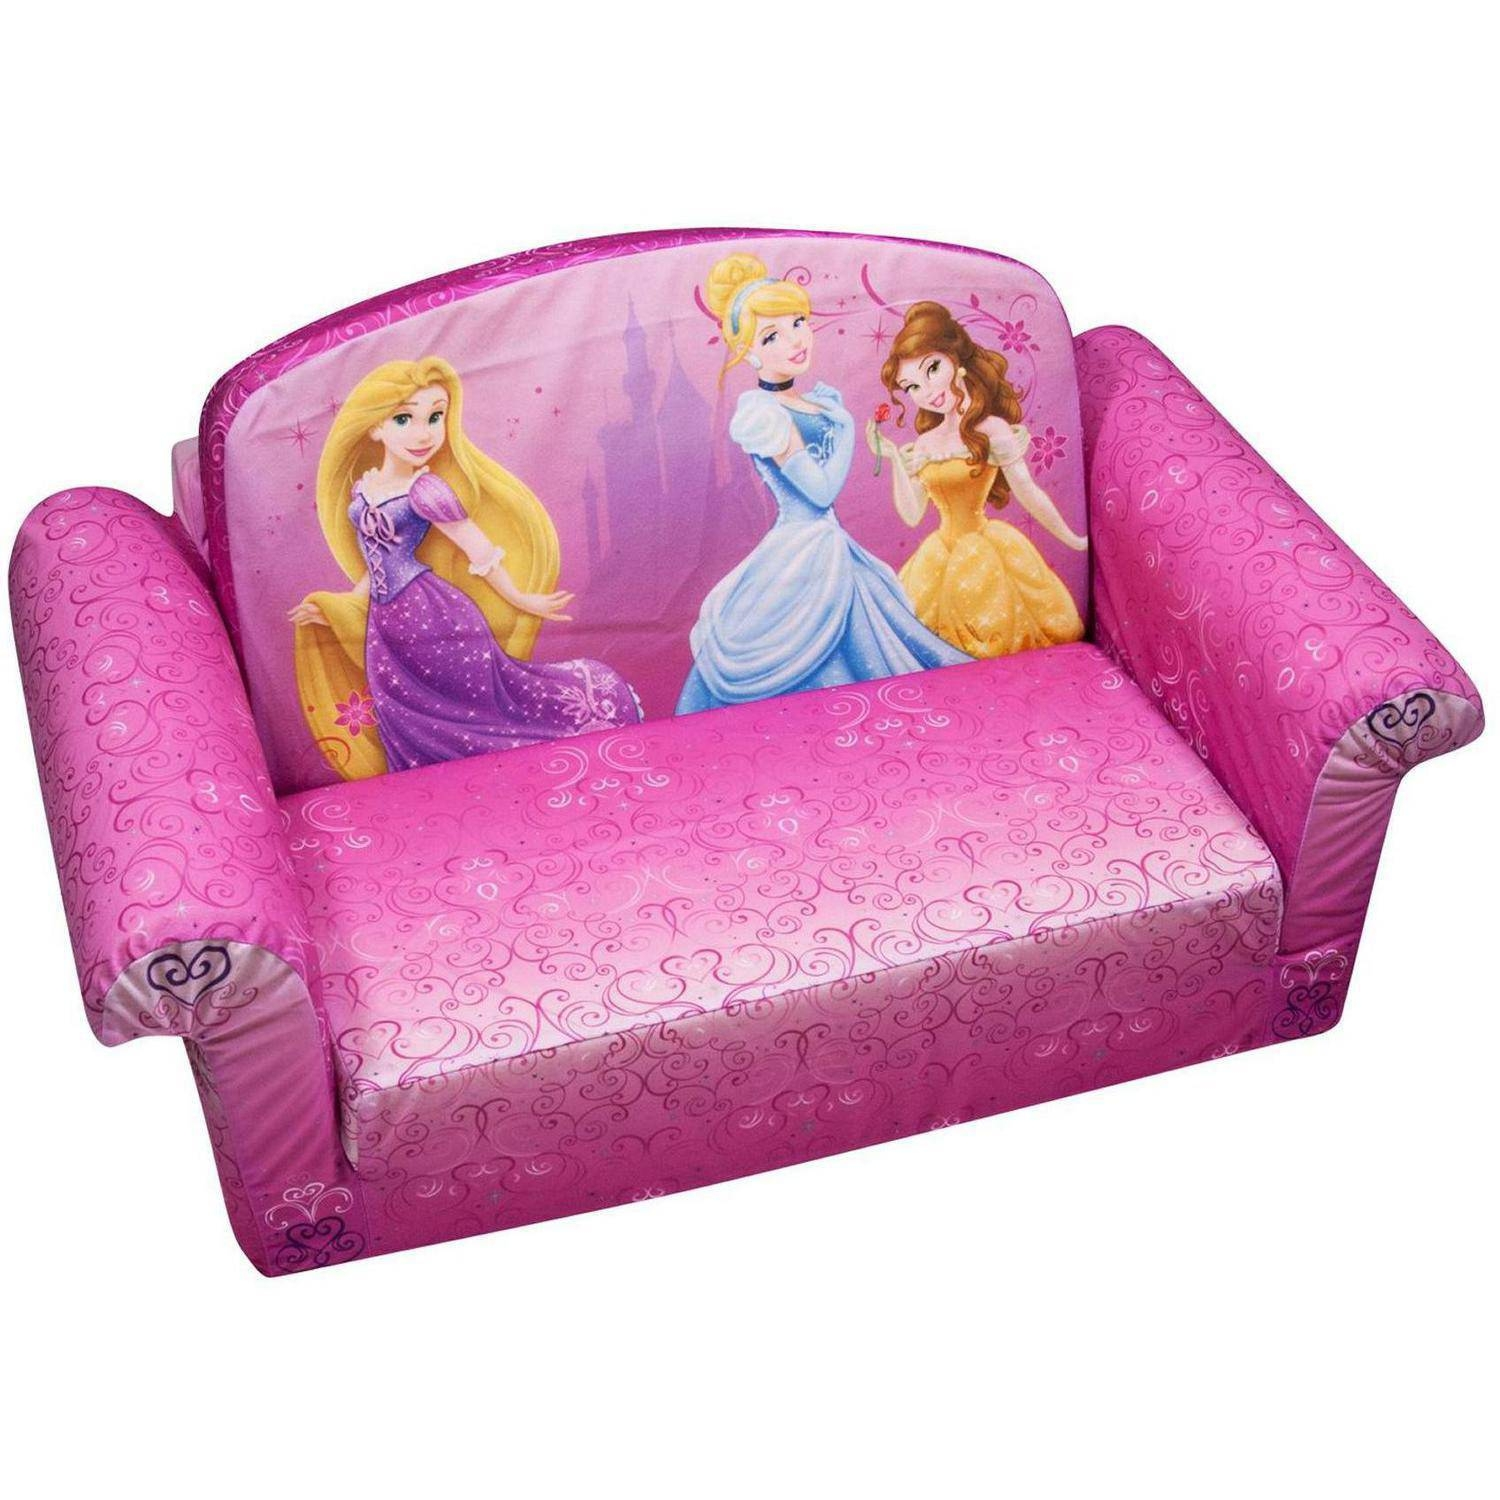 Marshmallow 2-In-1 Flip Open Sofa, Disney Princess - Walmart regarding Disney Sofa Chairs (Image 8 of 15)